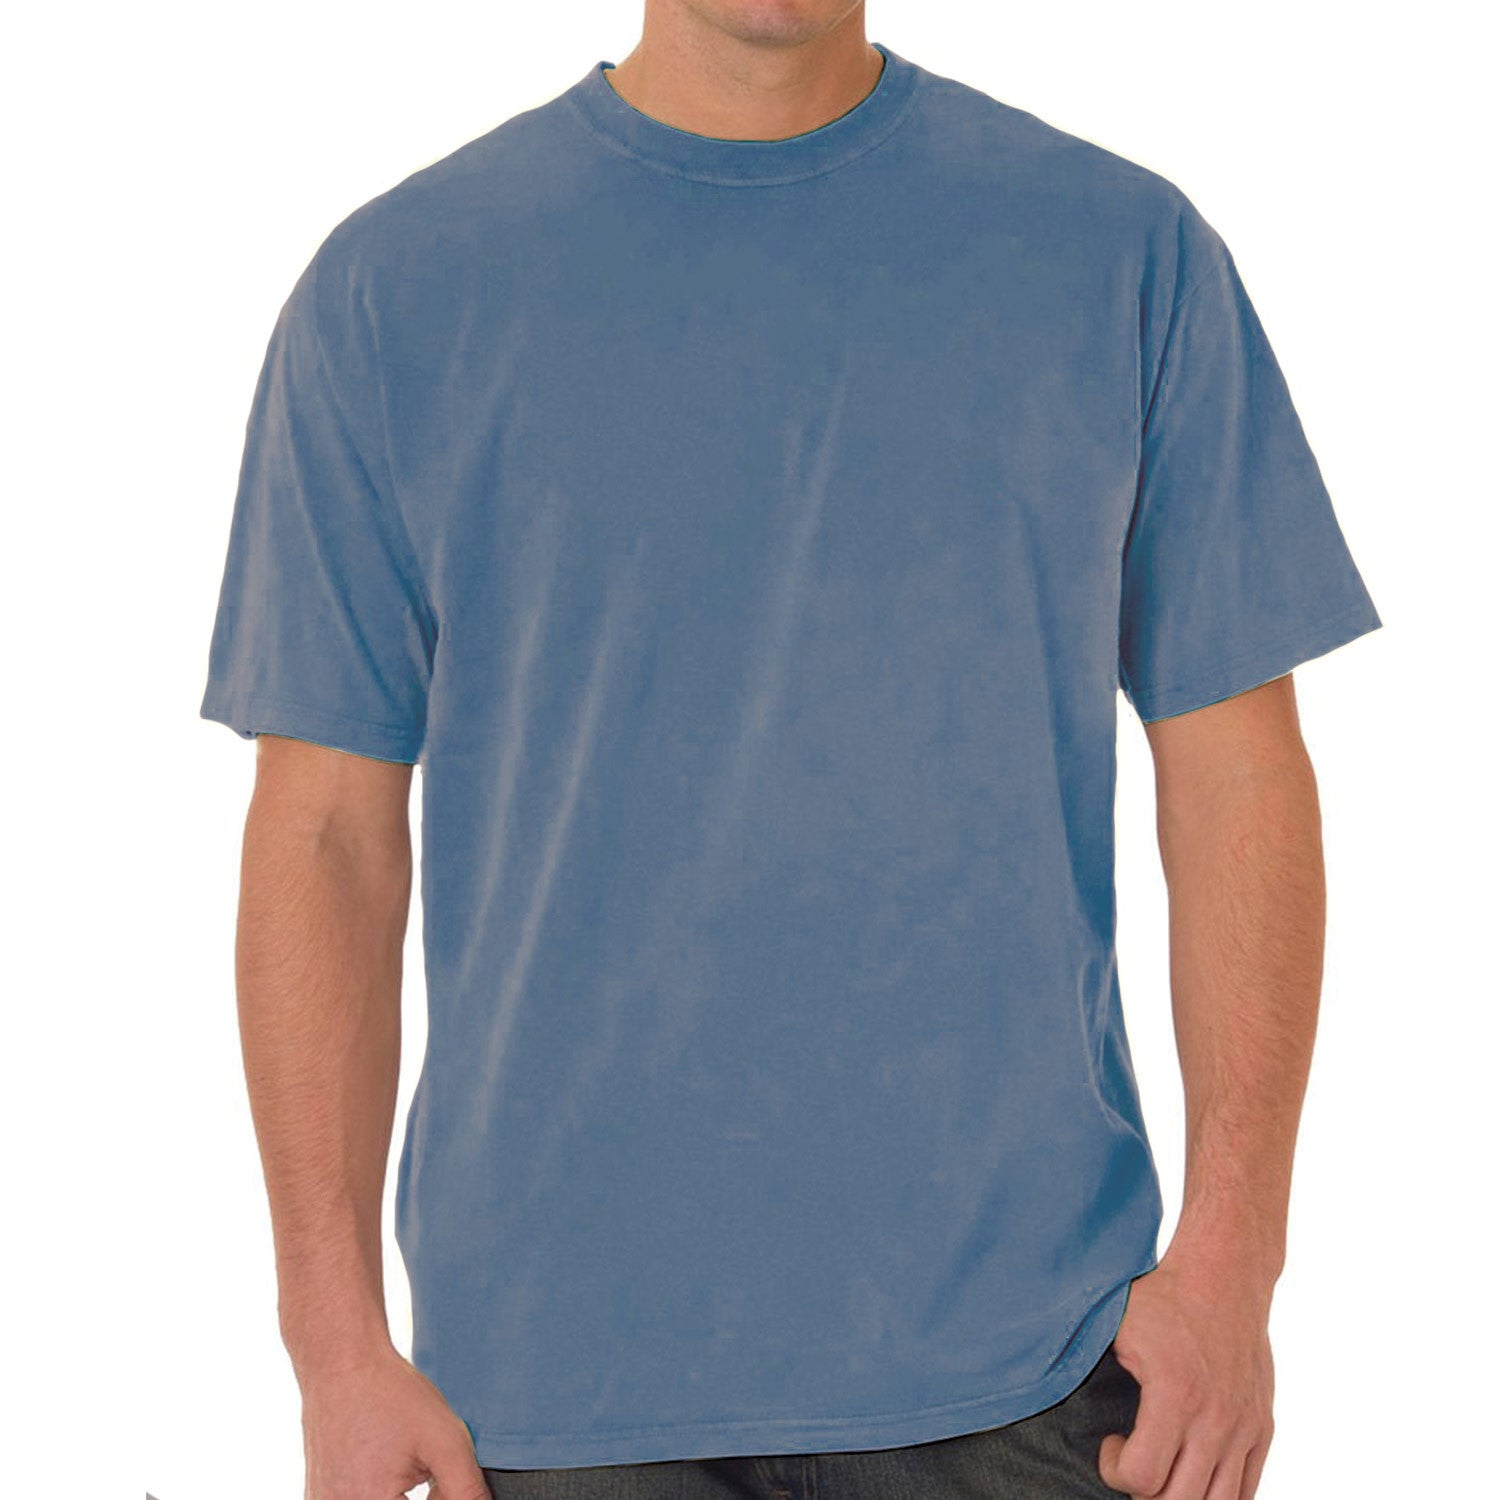 C9030 - Comfort Colors Tee Shirt